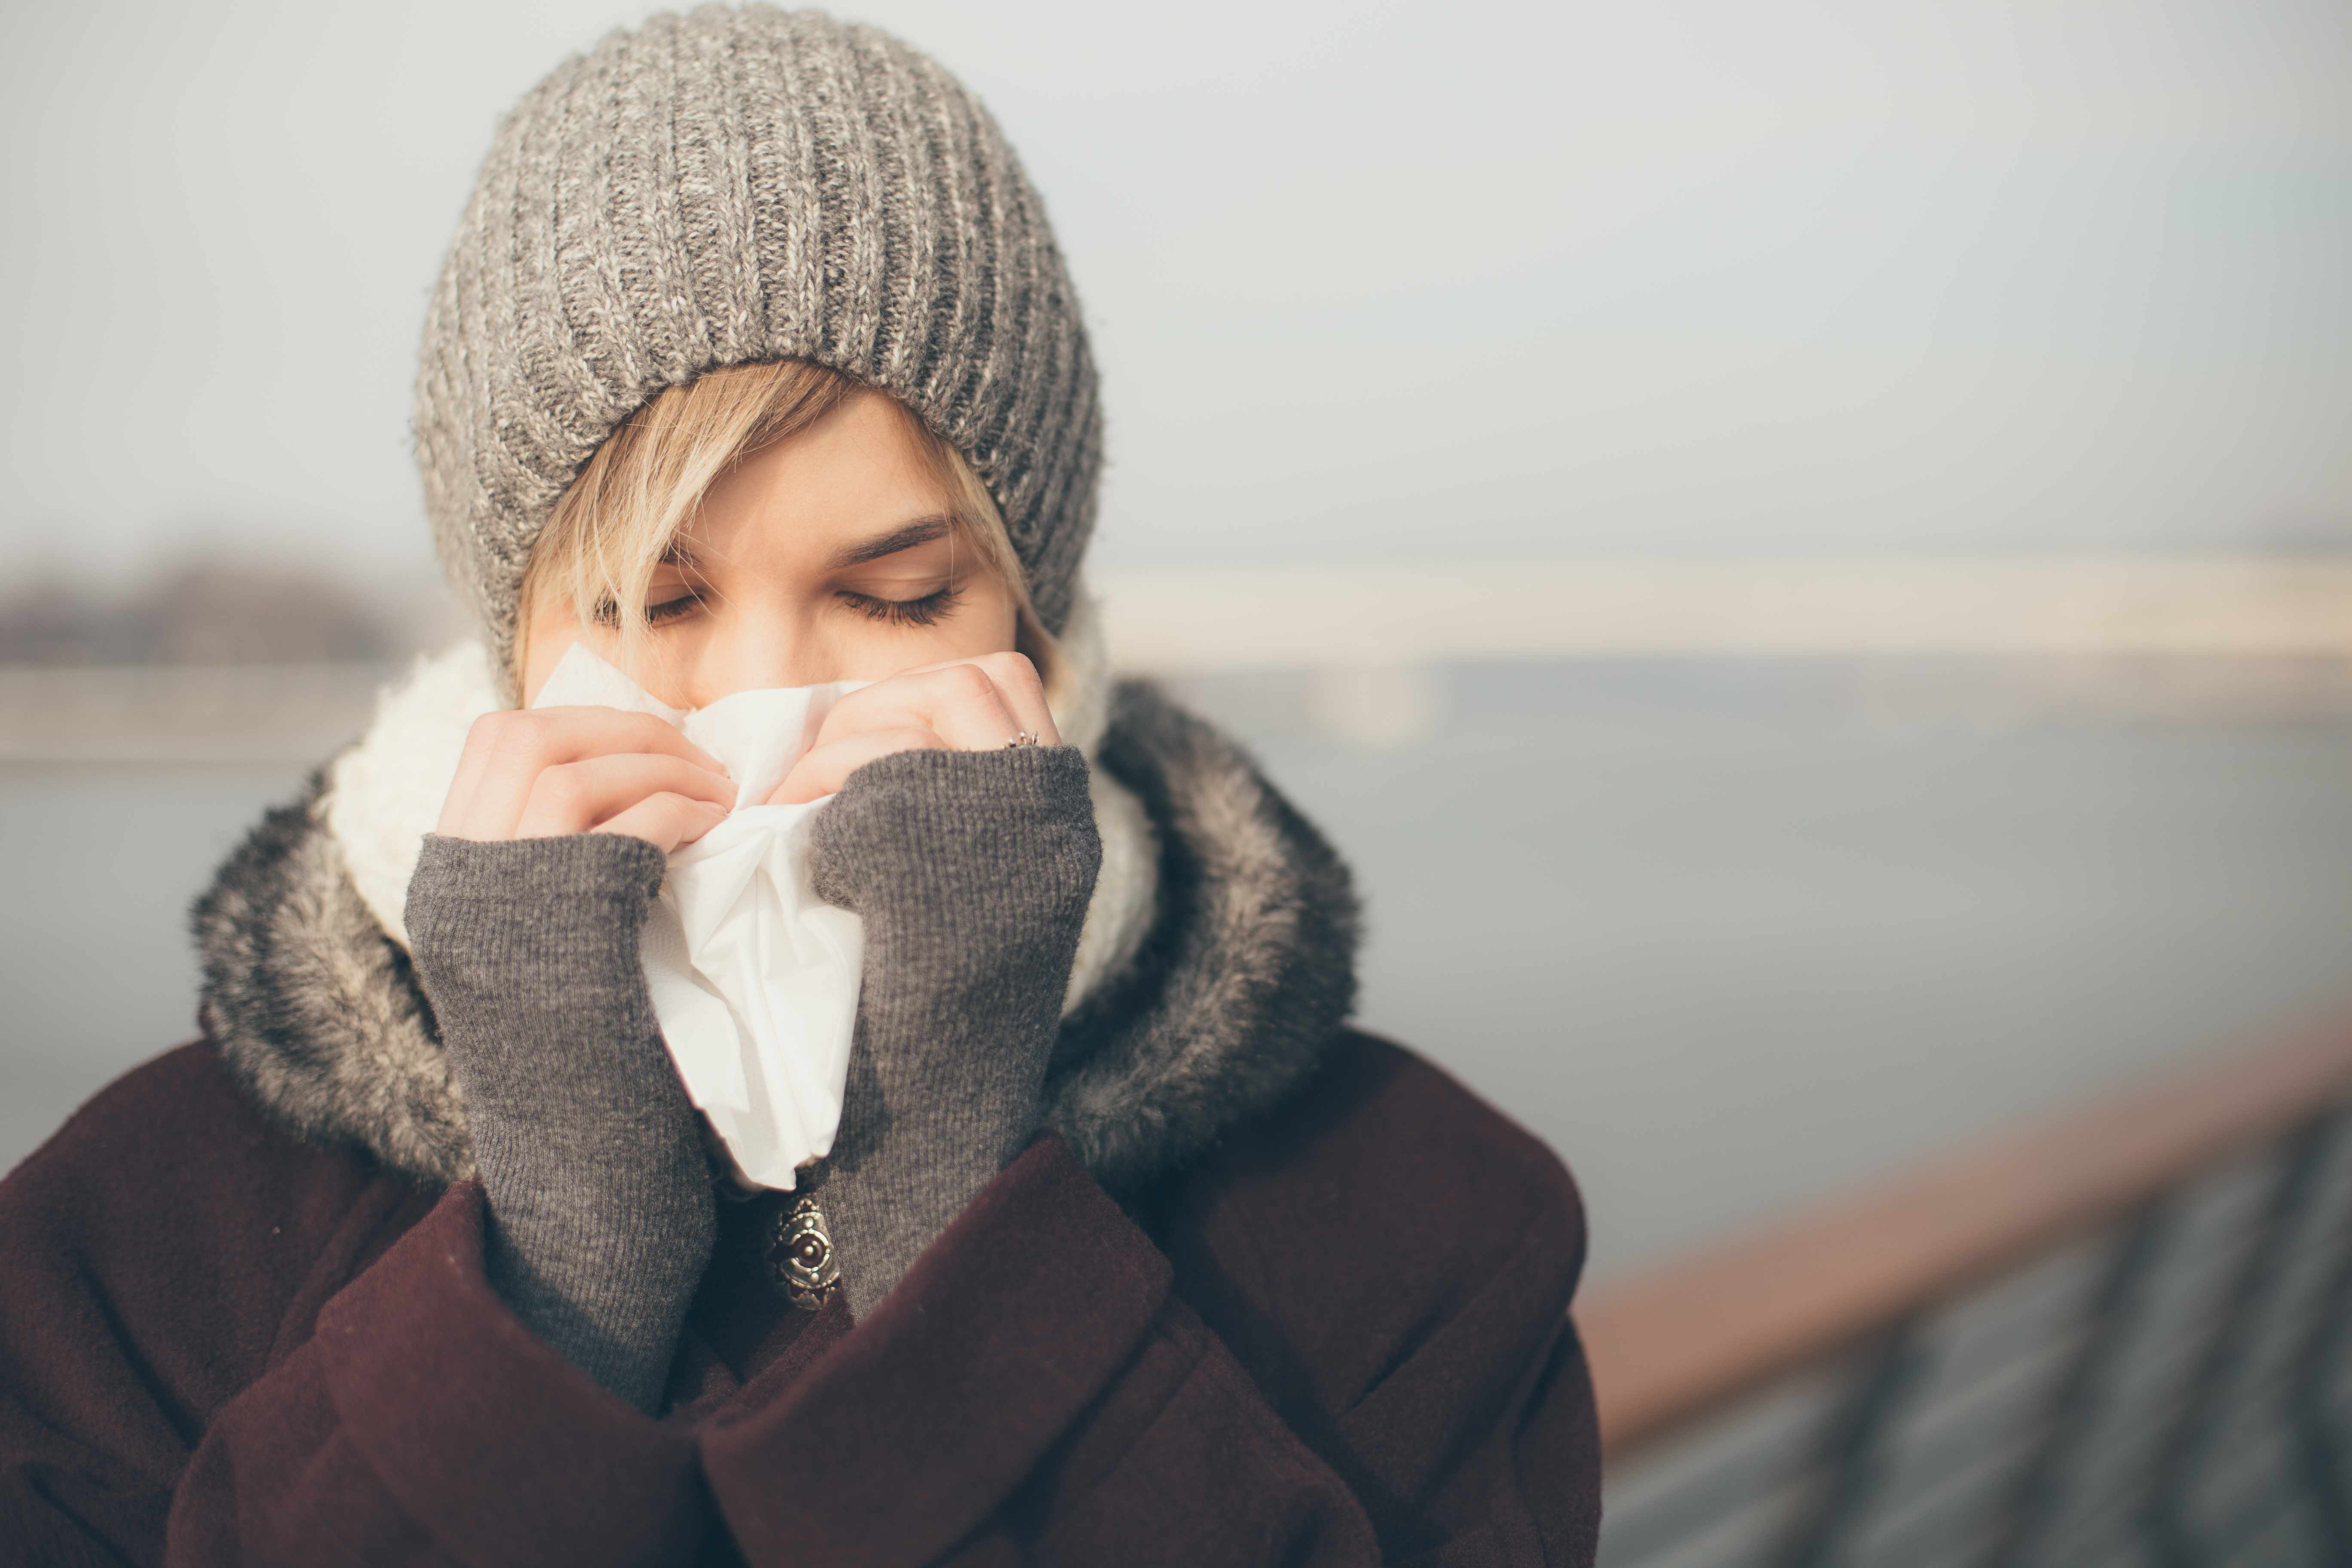 a woman bundled up in coat and hat in the cold outdoors blowing her nose